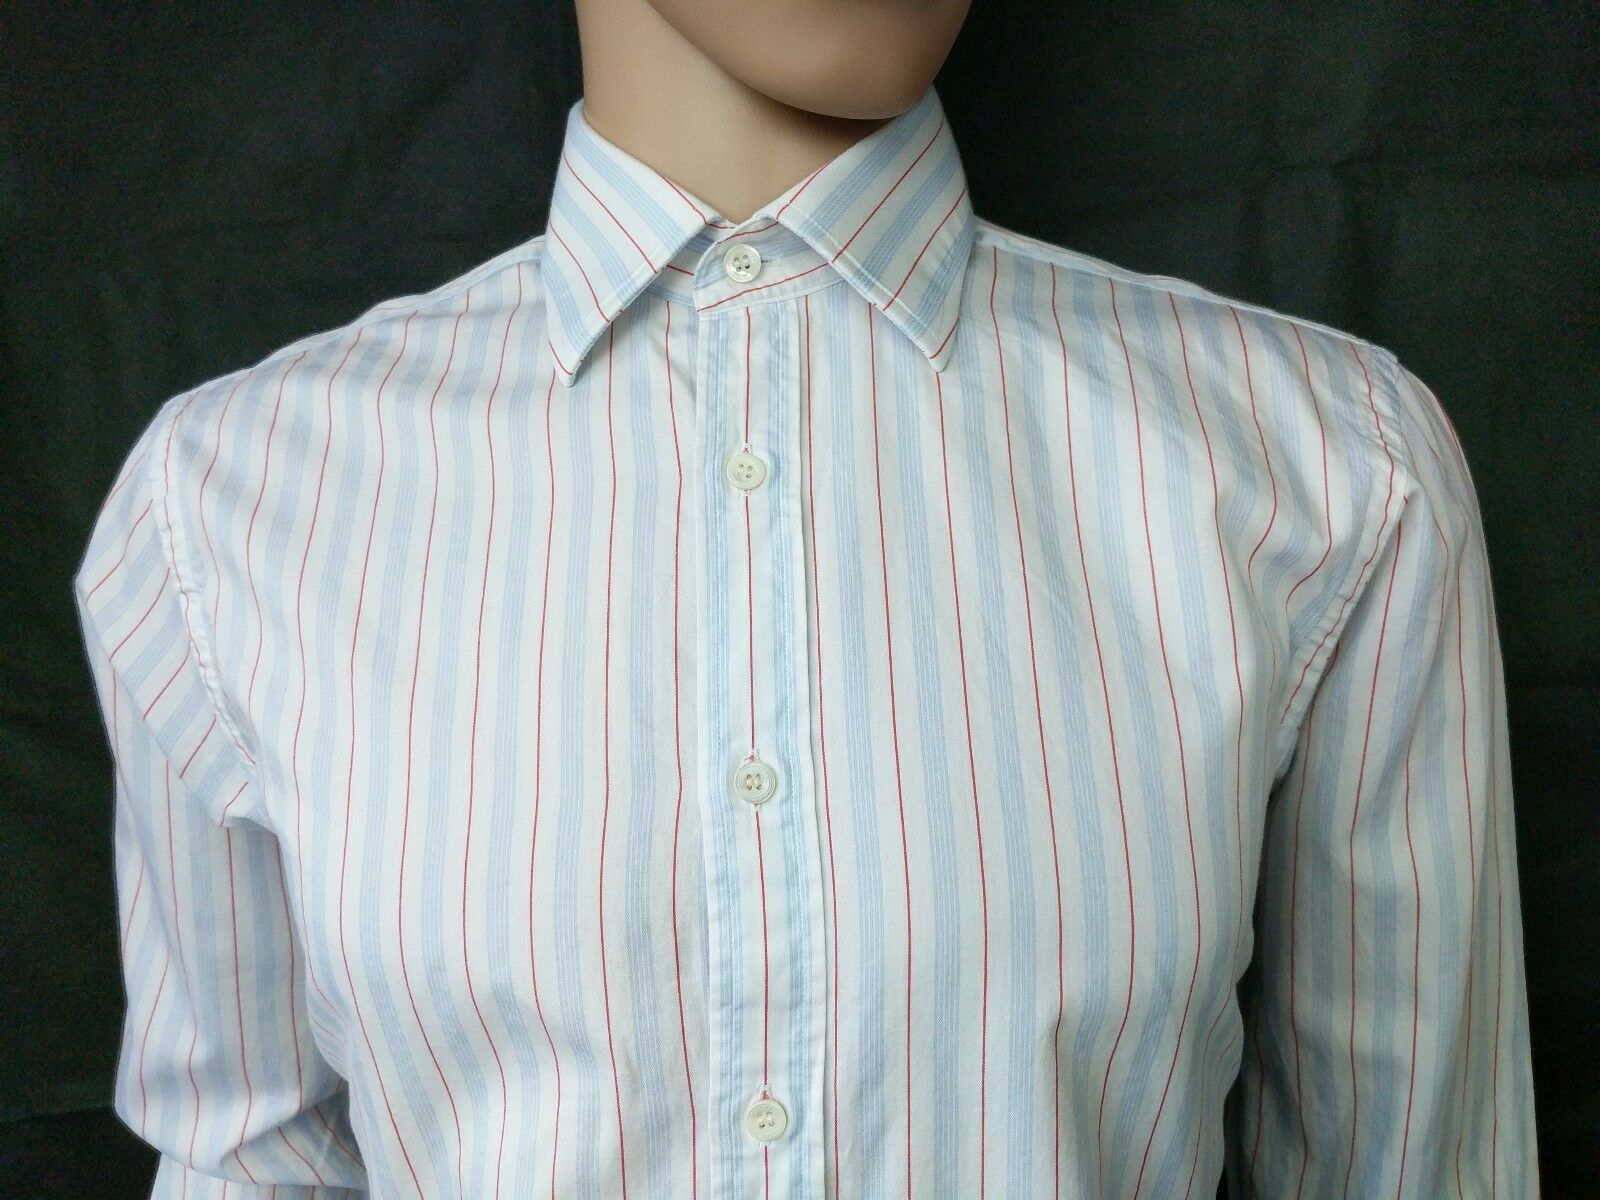 Gieves & Hawkes Mens Dress Shirt New Fit Size 16 41cm White bluee Stripe RRP